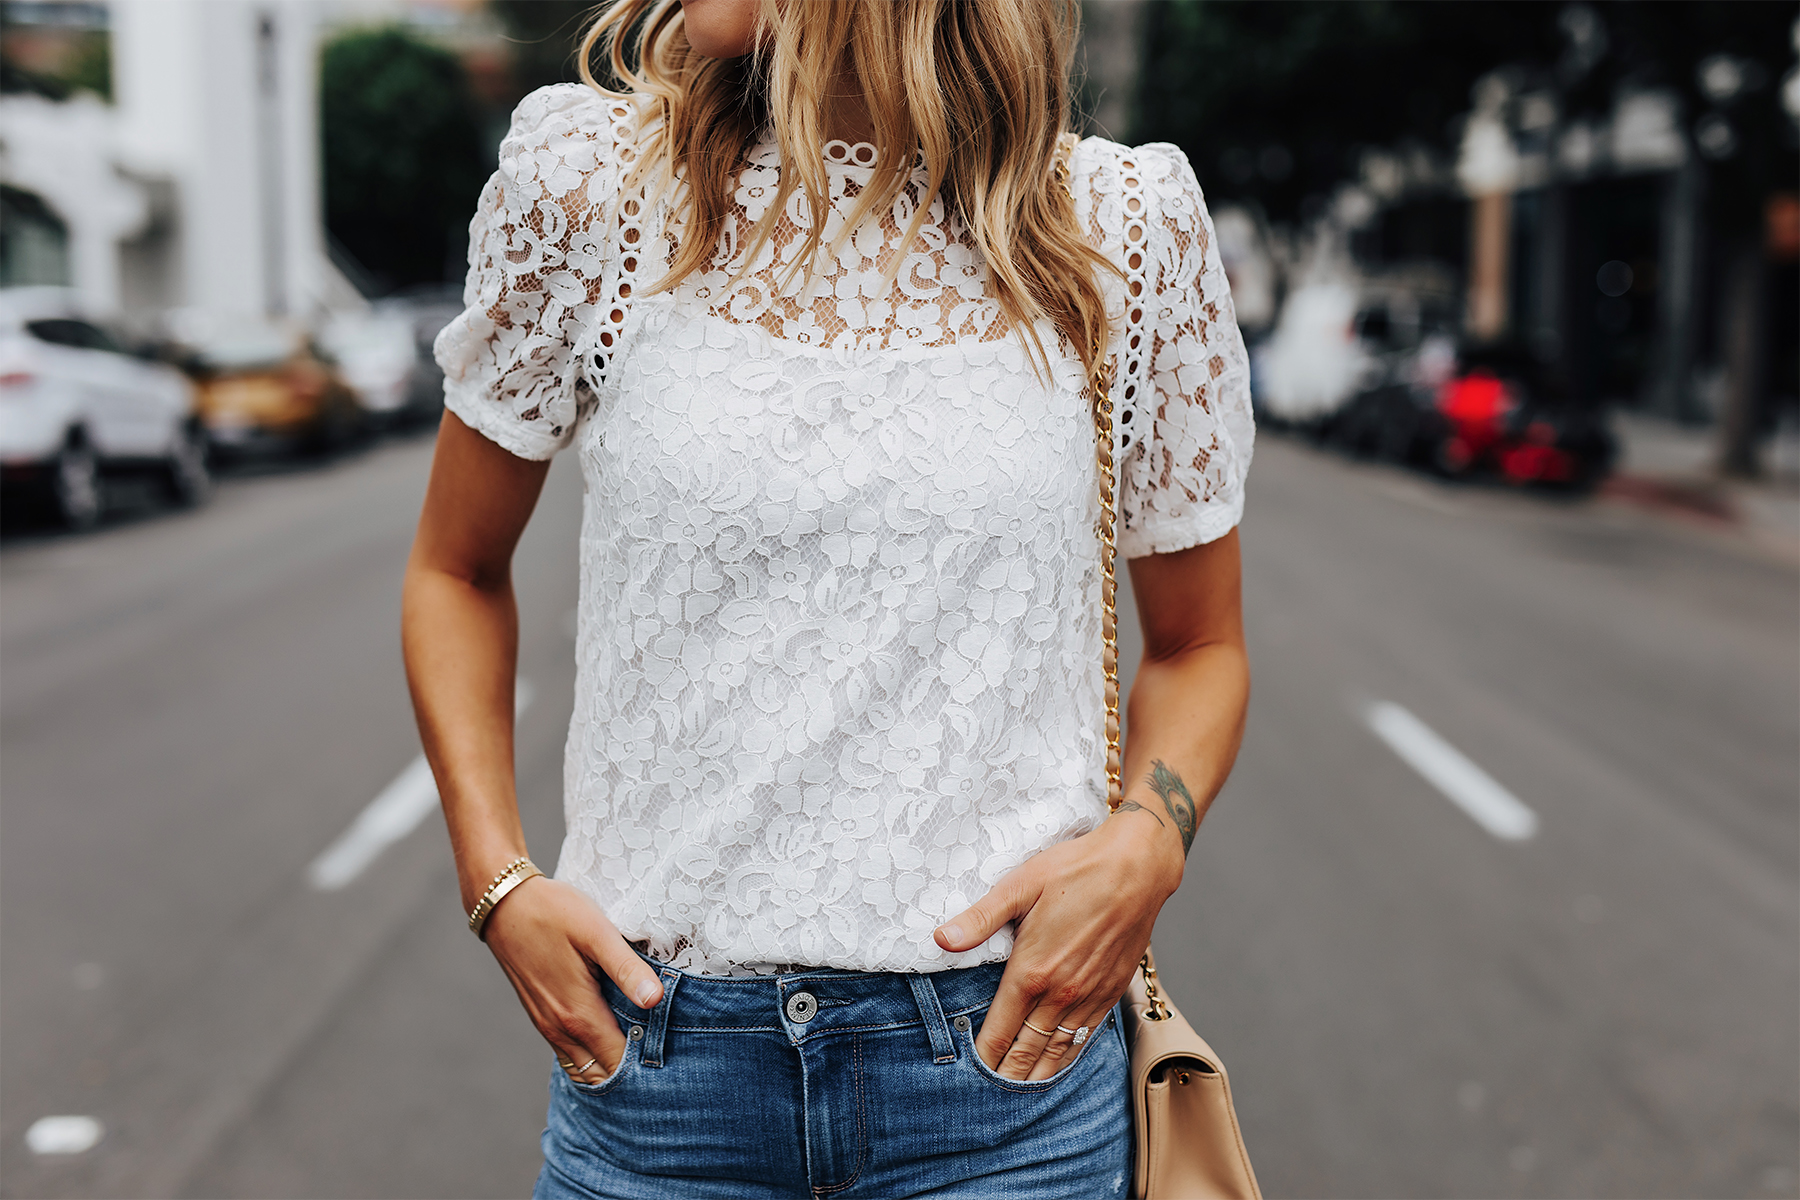 Fashion Jackson Wearing Bloomingdales Short Sleeve White Lace Top Summer Date Night Outfit